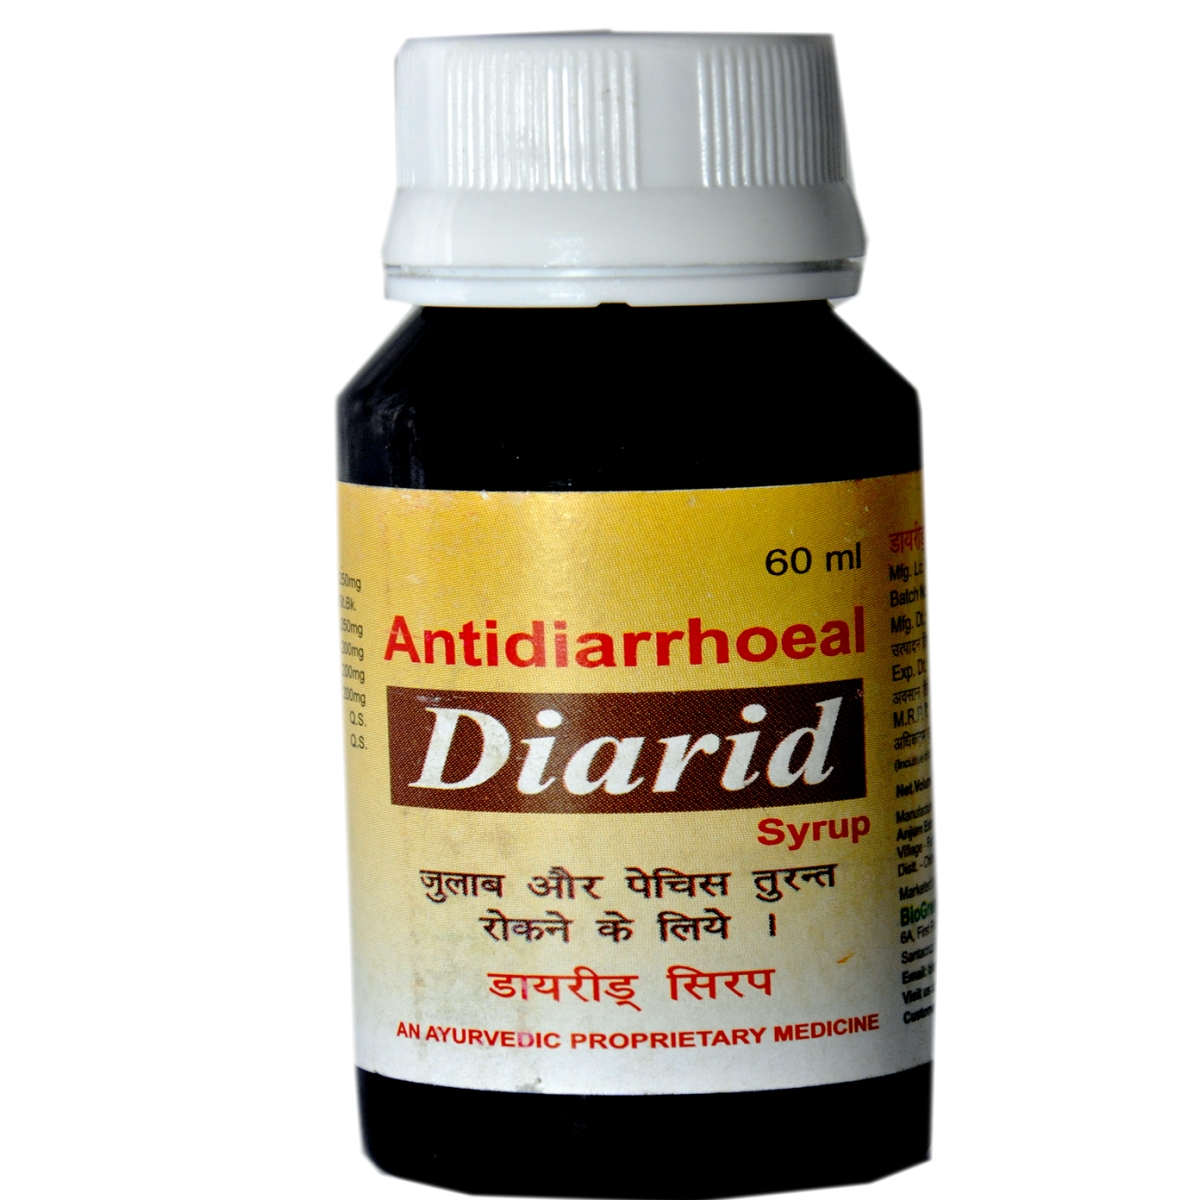 Diarid Syrup In Ganderbal